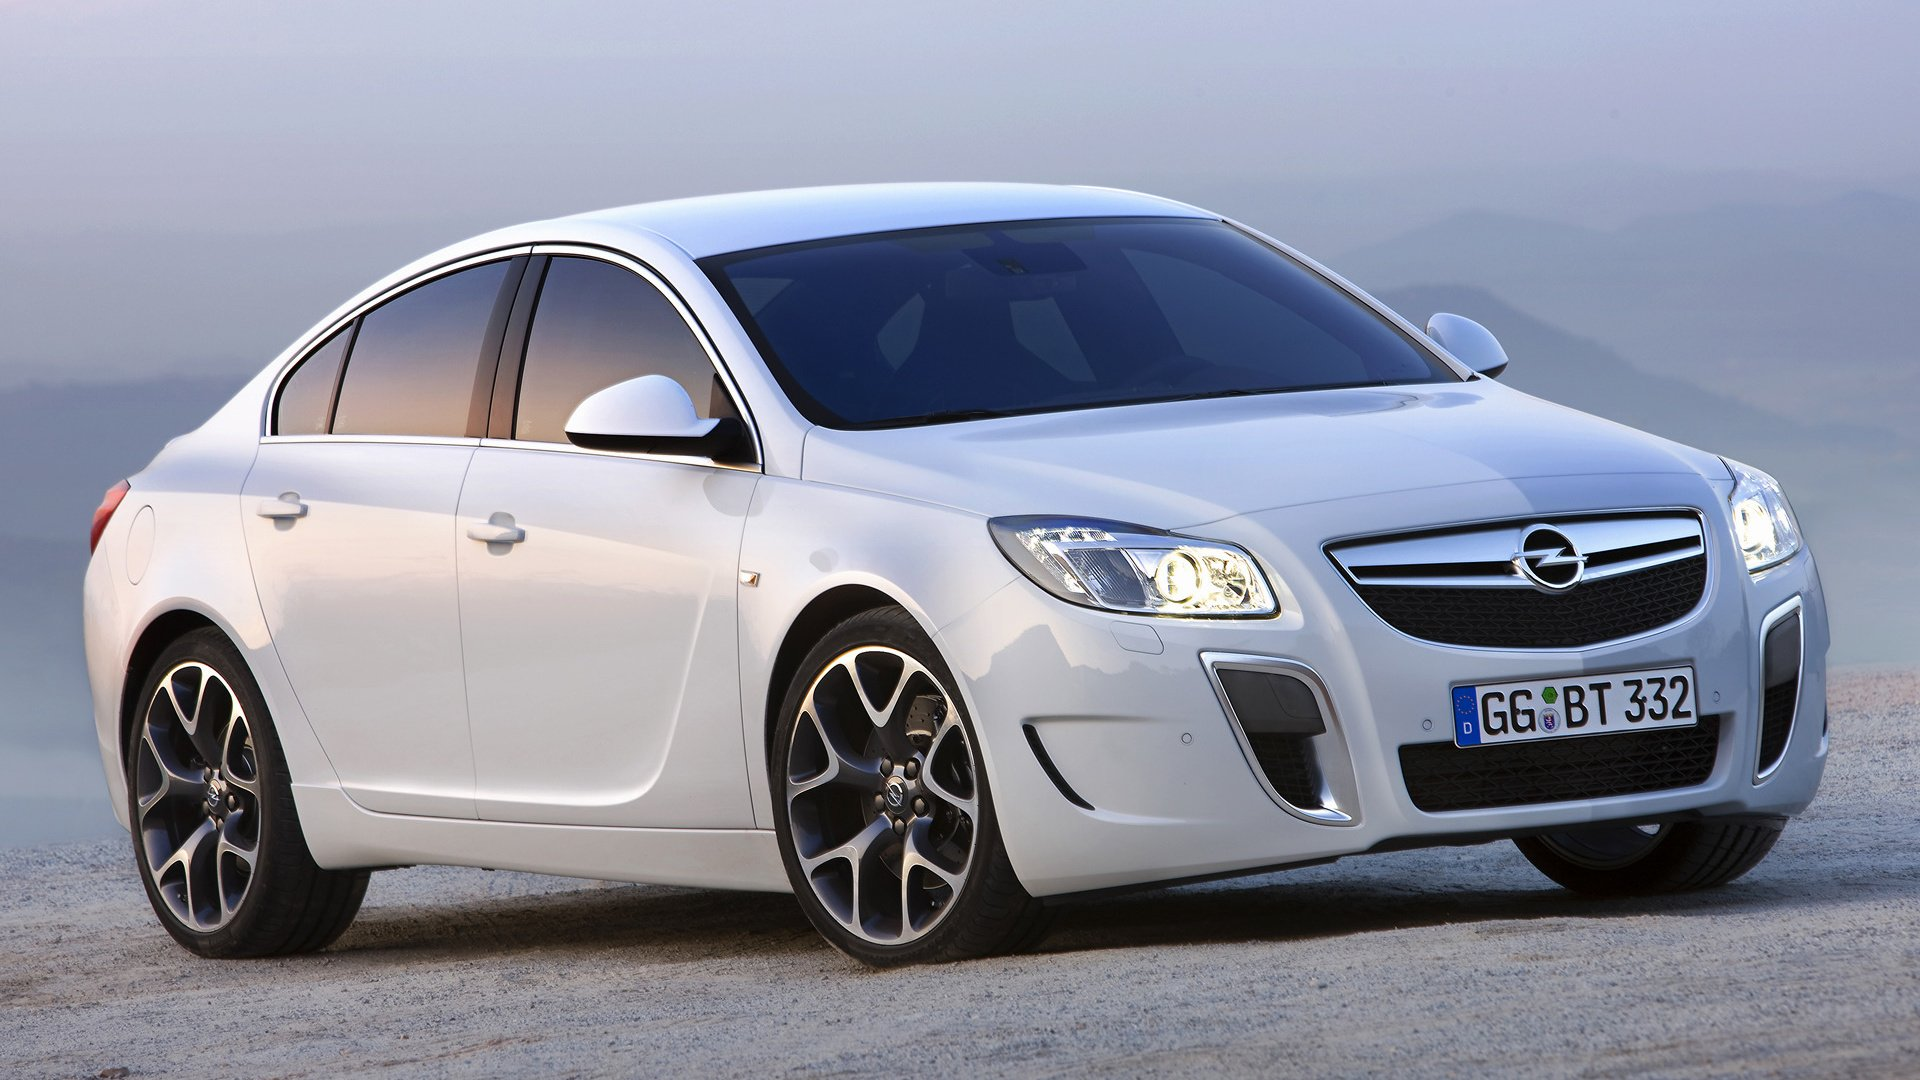 2009 Opel Insignia Opc Hd Wallpaper Background Image 1920x1080 Id 1101280 Wallpaper Abyss